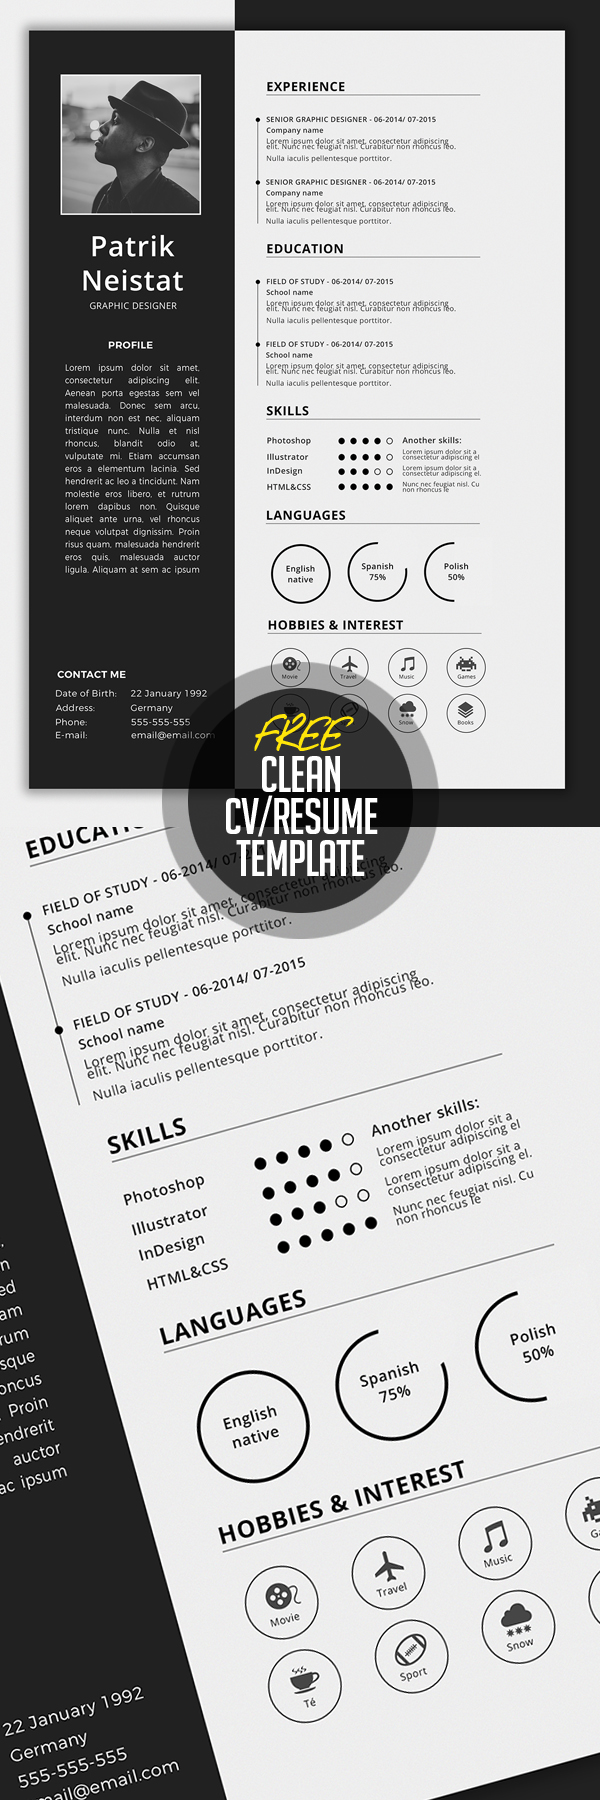 simple cvresume template free download - Resume Template For Pages